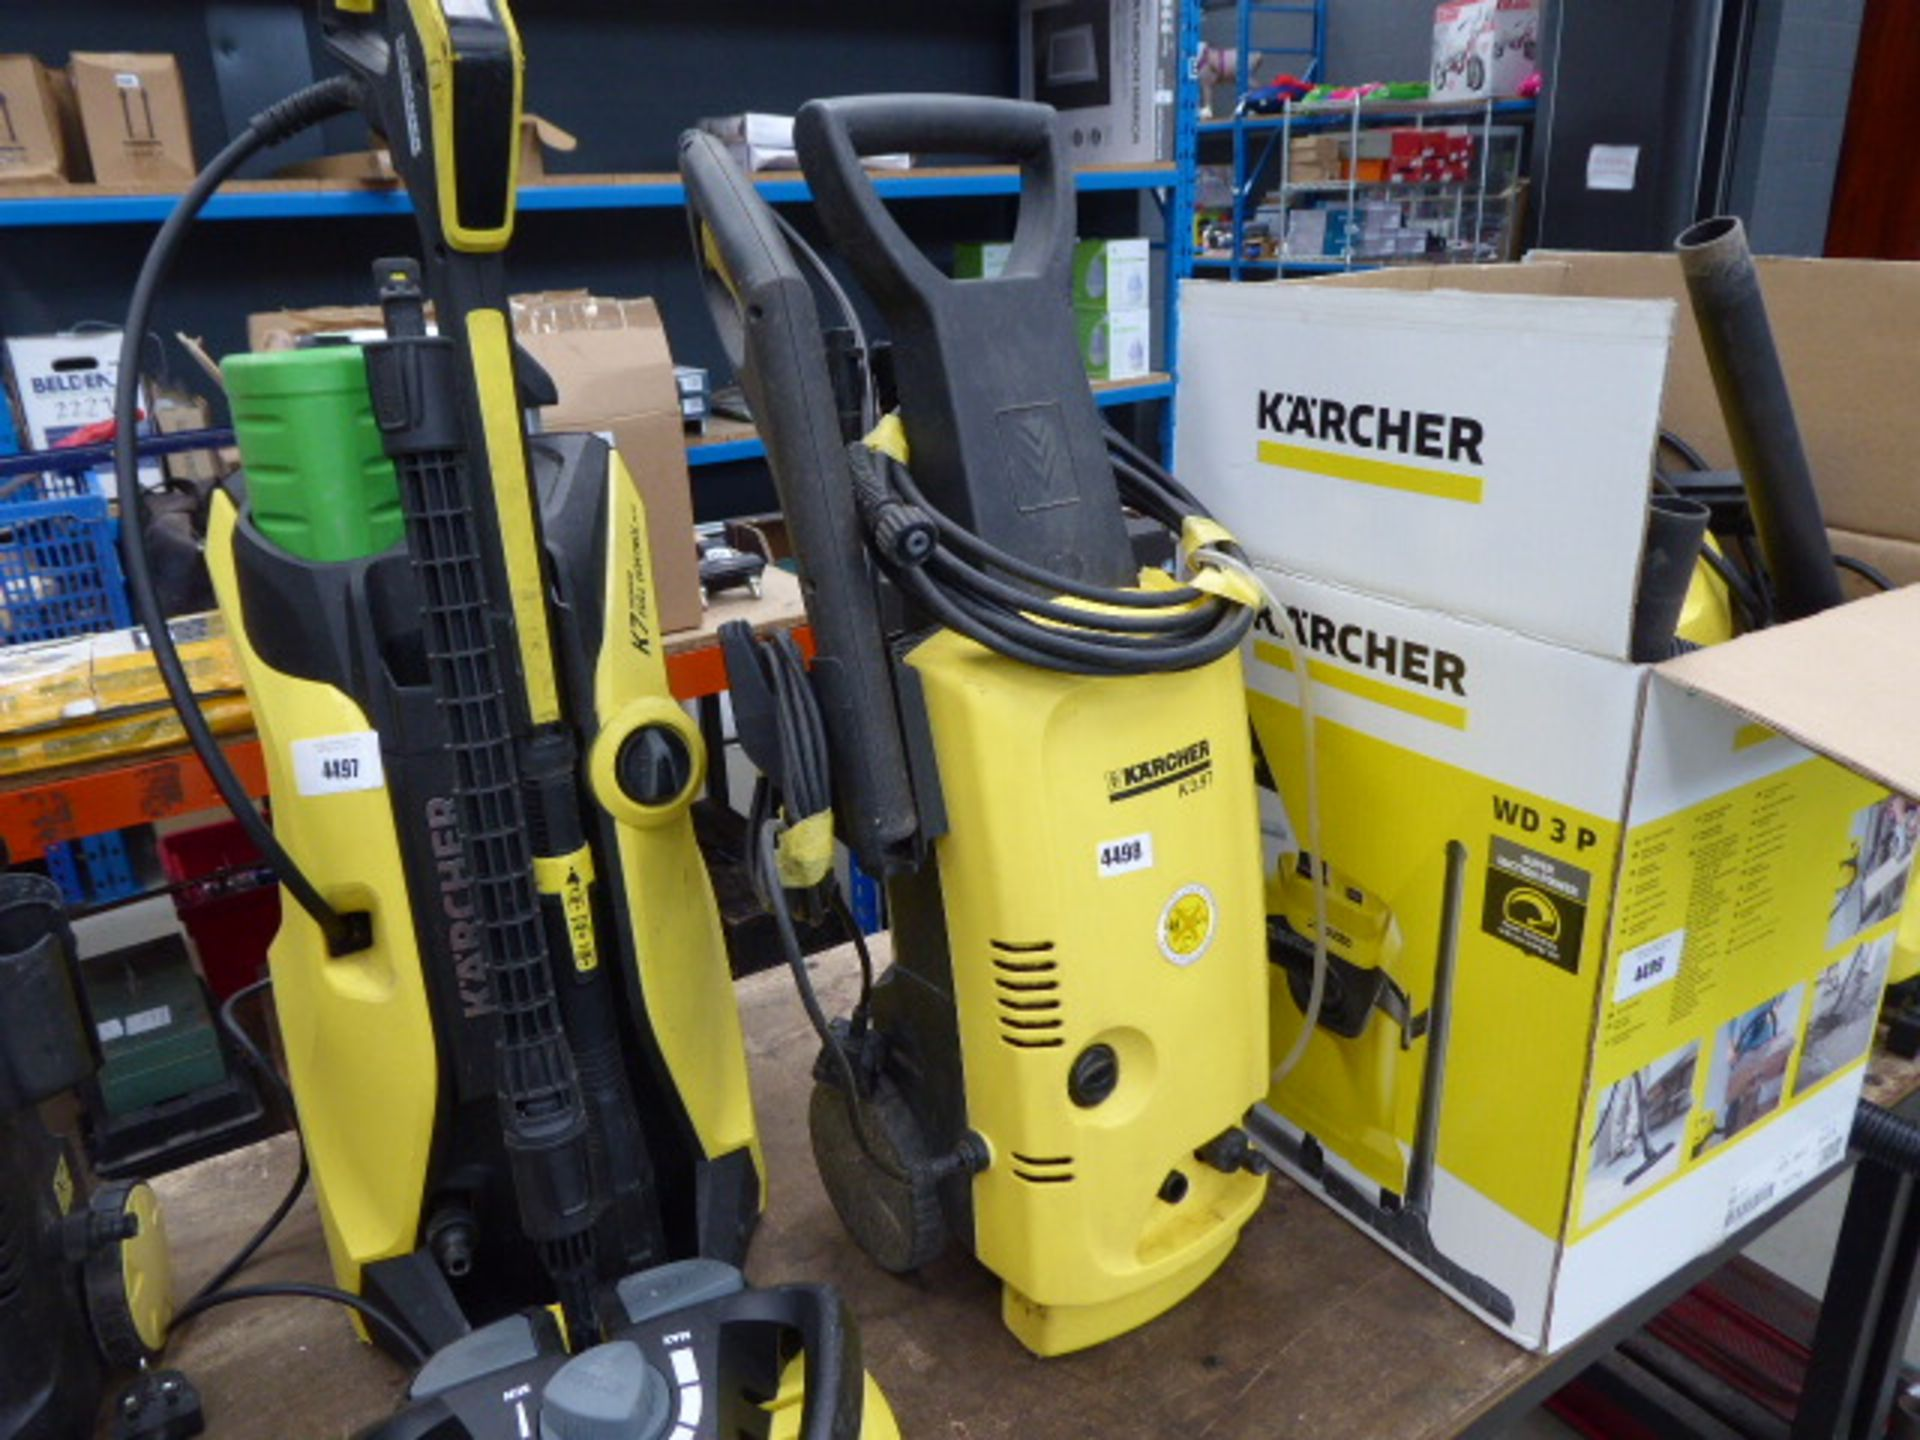 Lot 4498 - Karcher K3 electric pressure washer